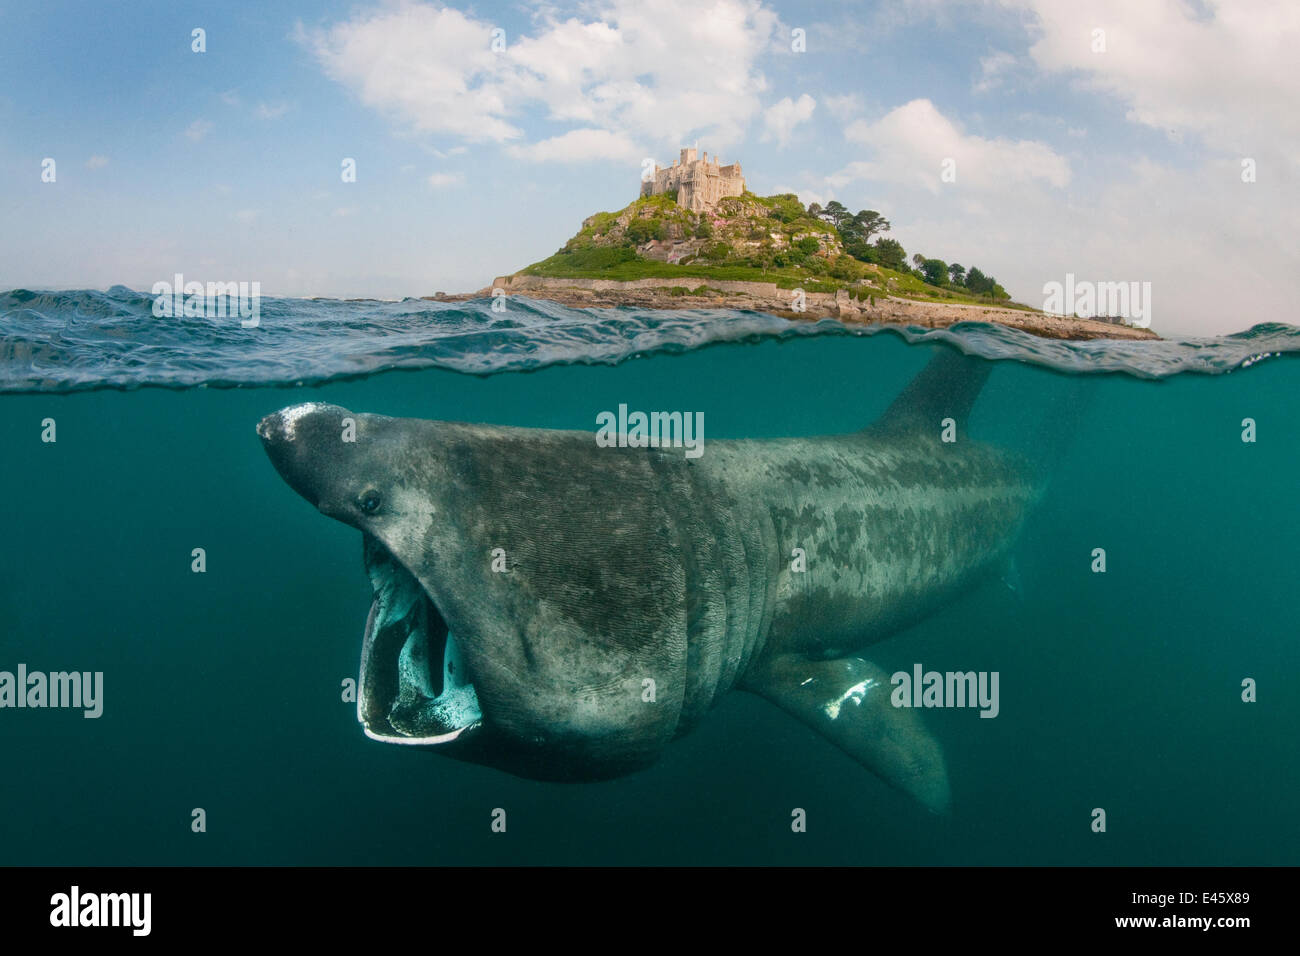 A split level digital composite showing a Basking shark (Ceterhinus maximus) feeding on plankton around St Michael's - Stock Image